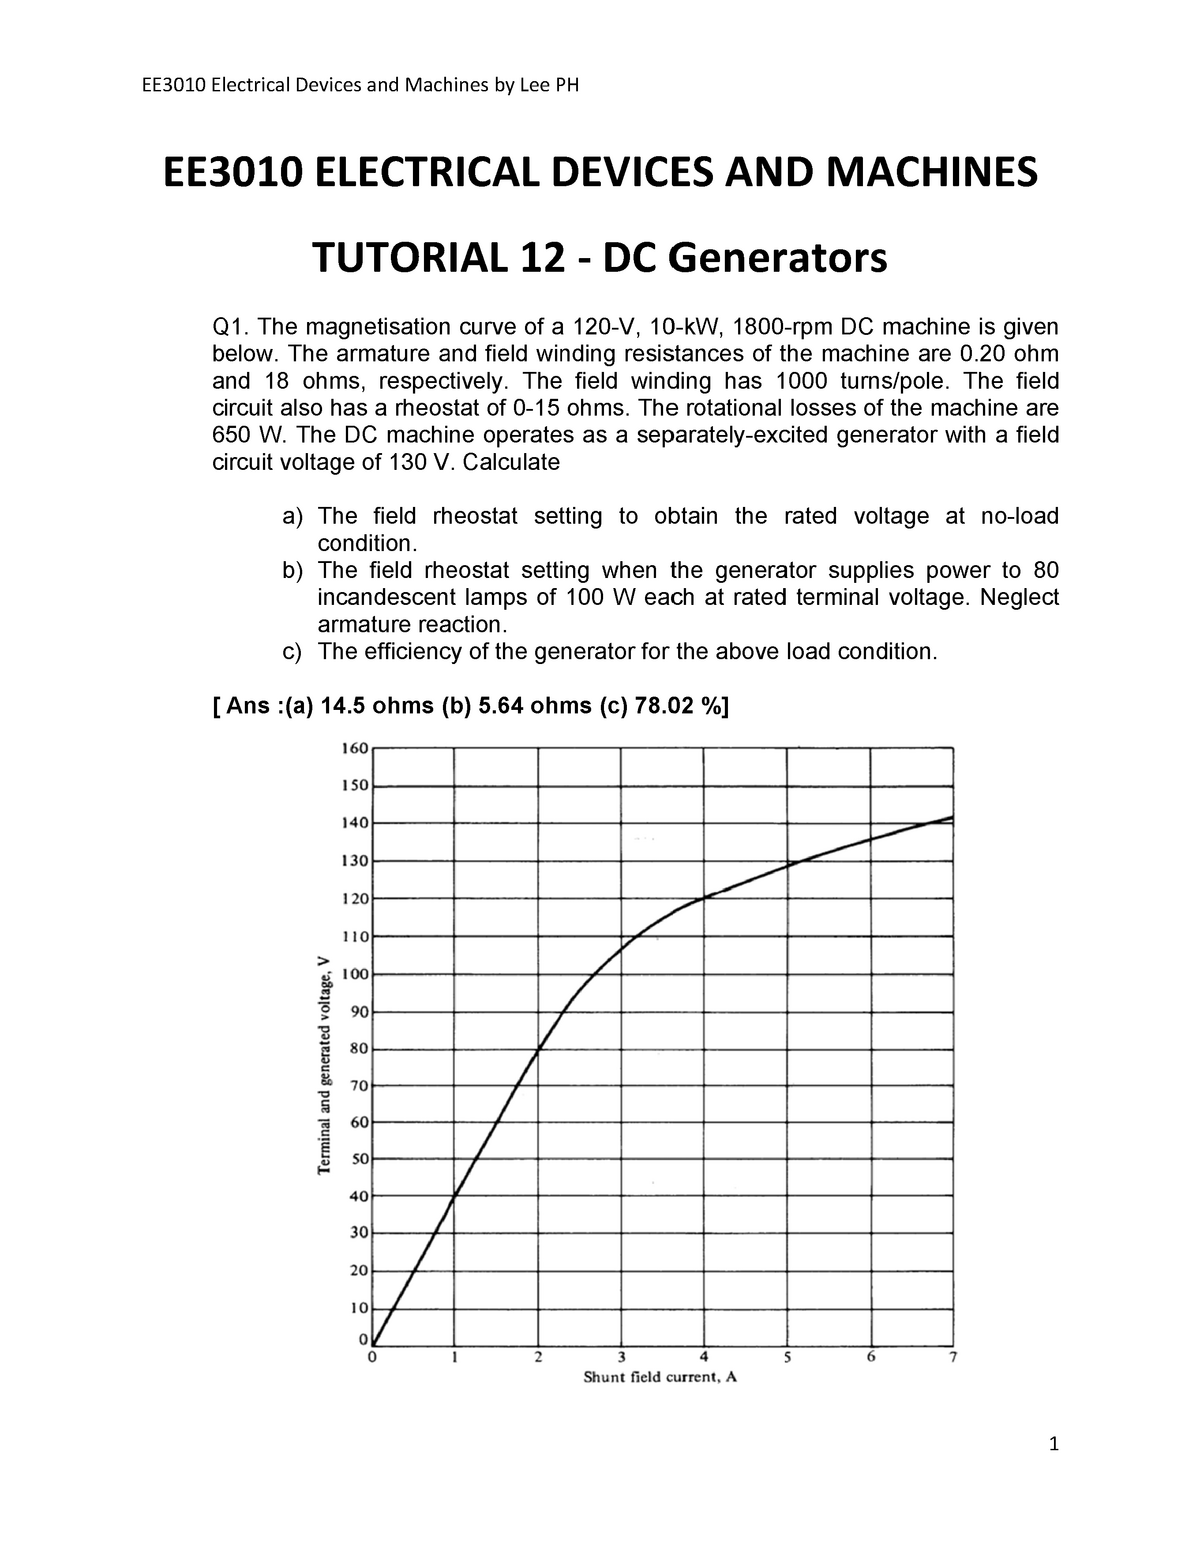 T12 DC Generators - Tutorial - EE3010: Electrical Devices & Machines